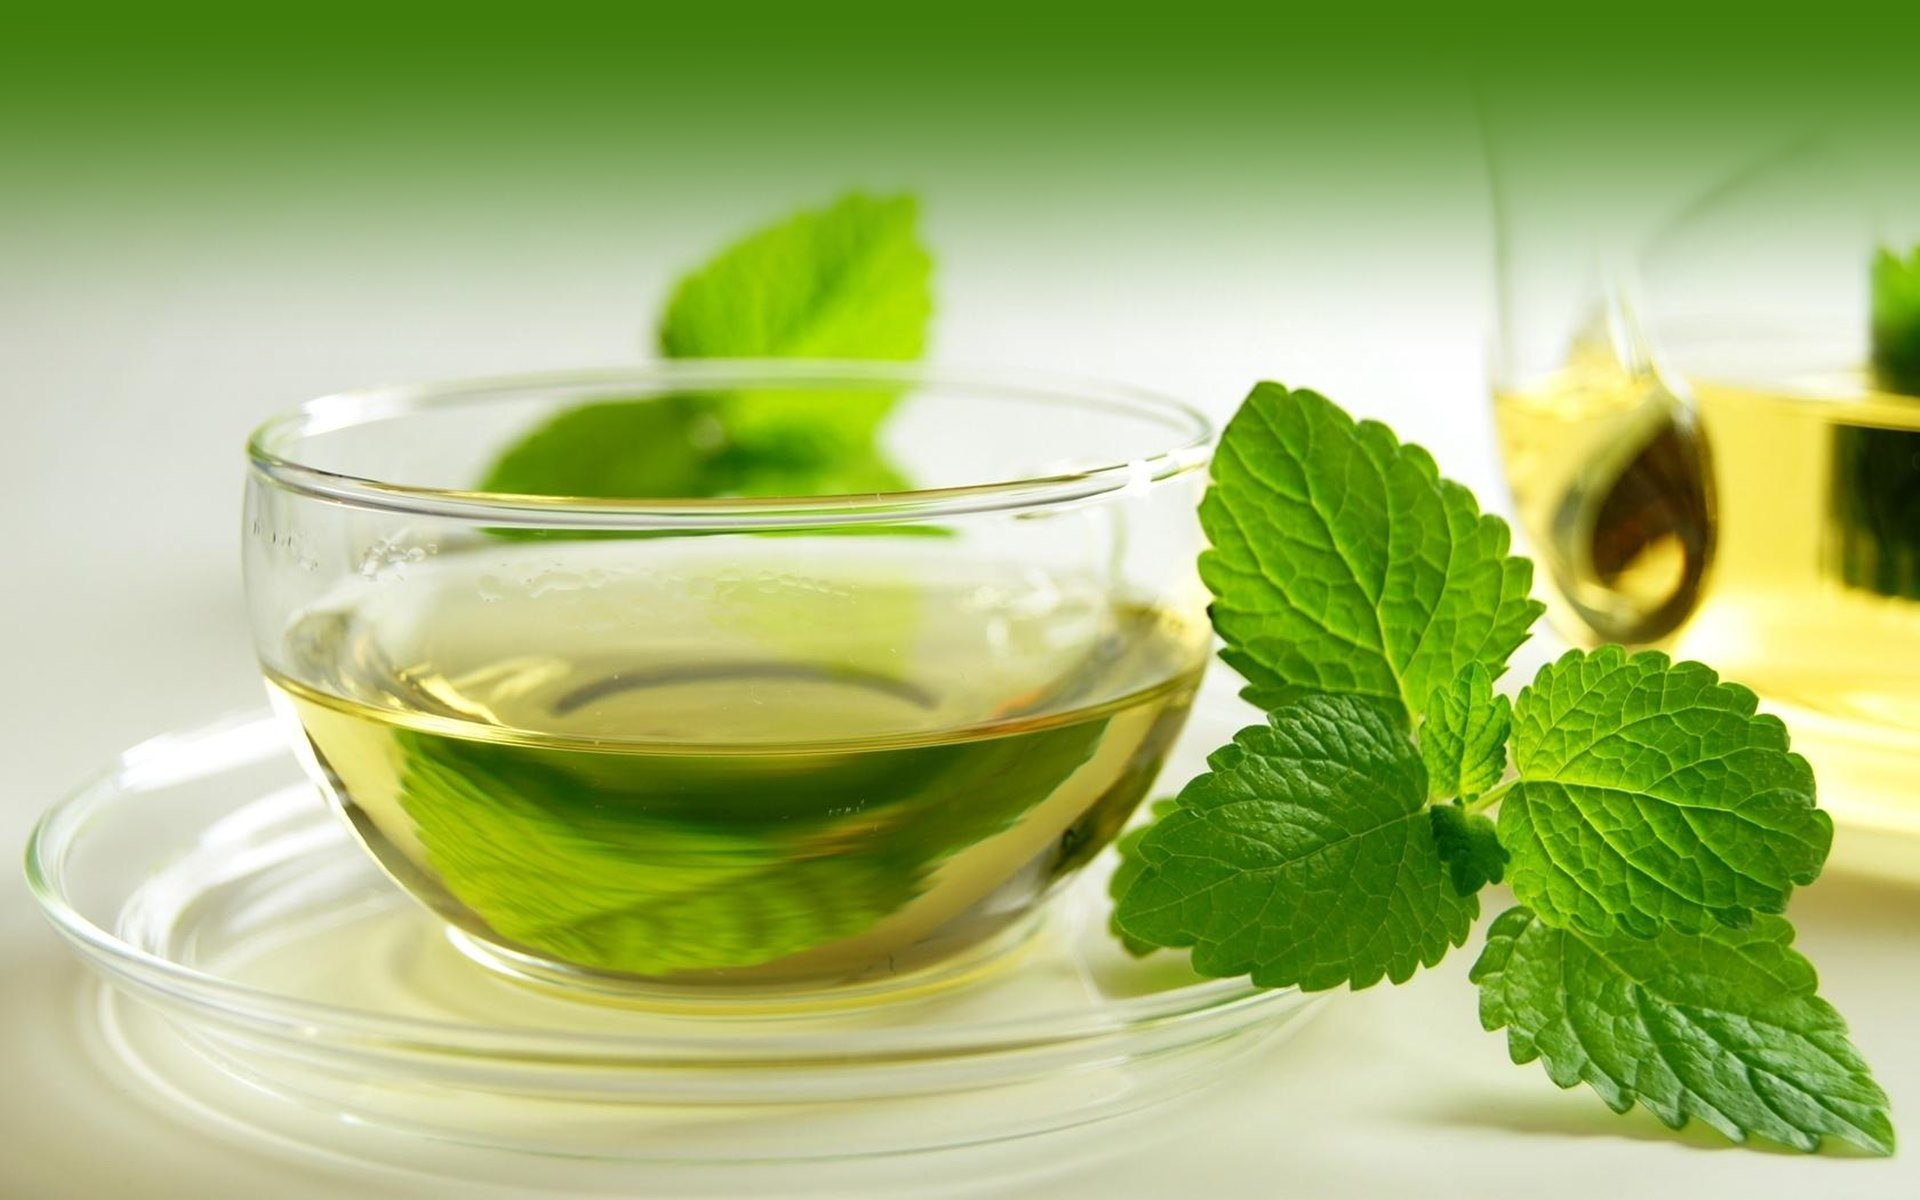 Image result for green tea hd wallpaper